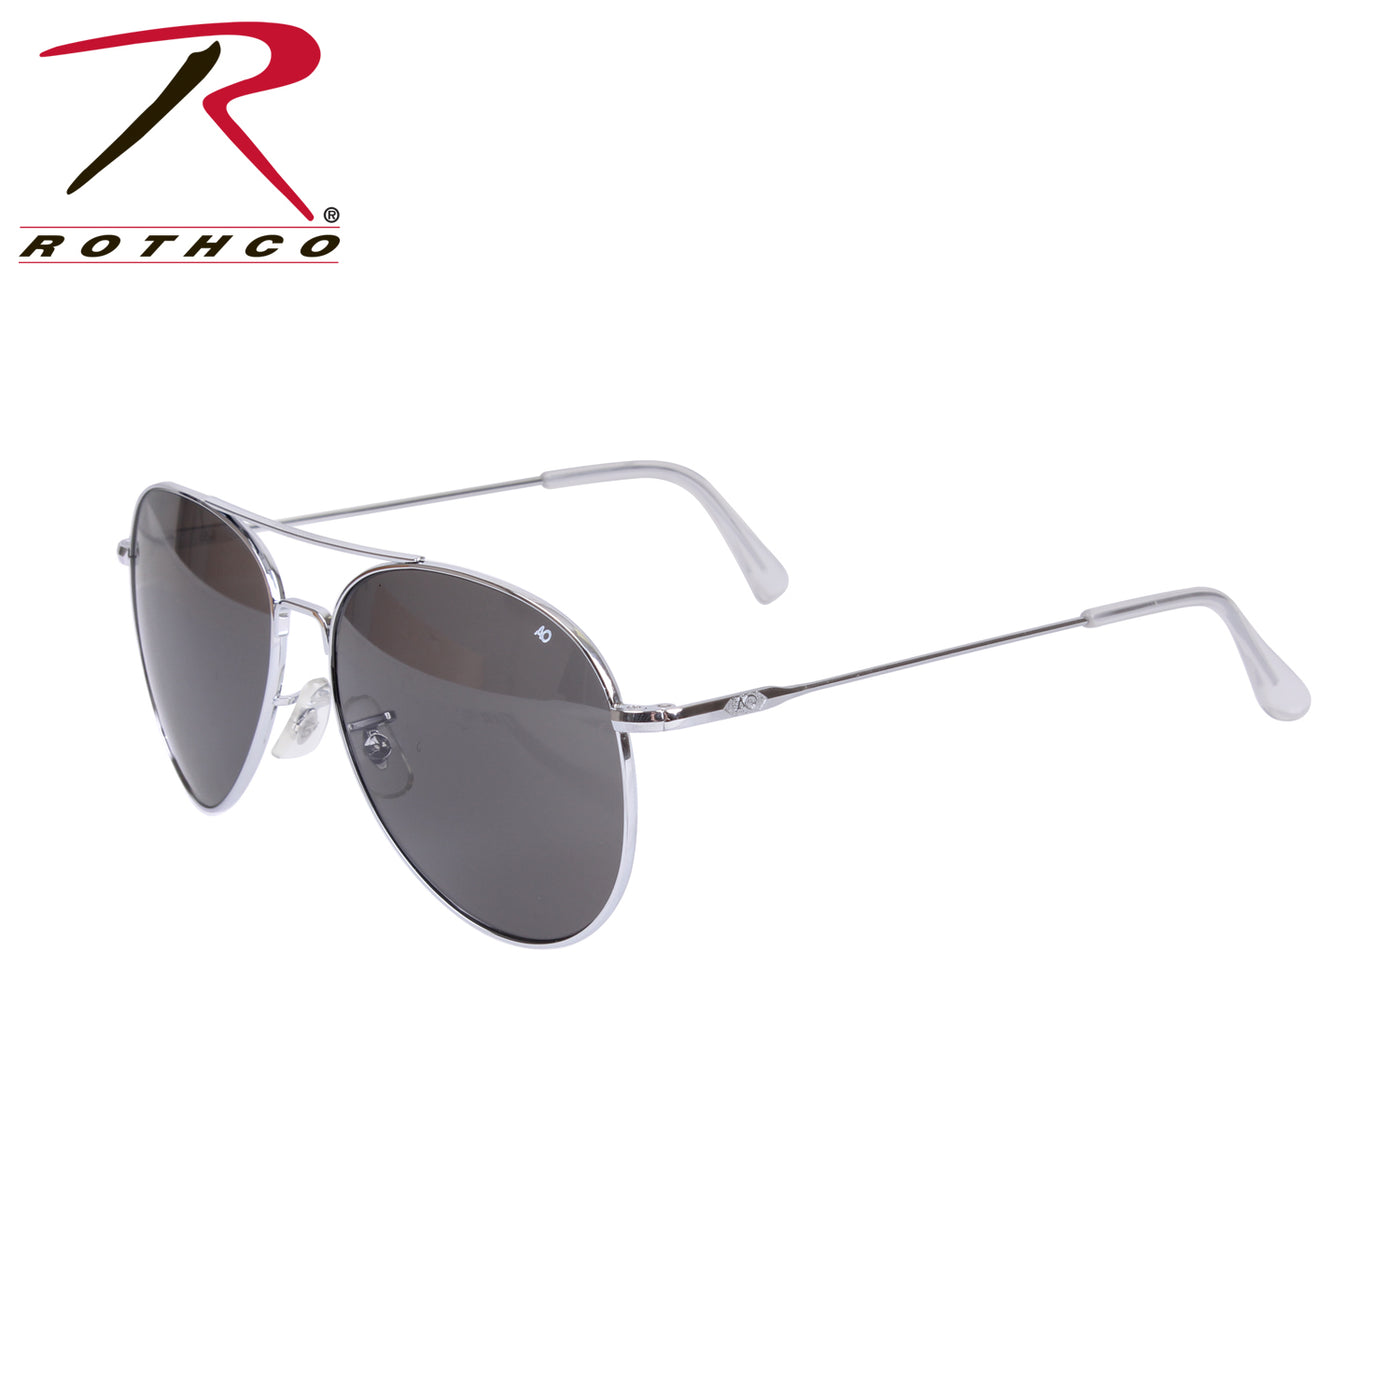 bed5fac3e61 American Optical Sunglasses 58 MM General Aviator - Trailside Outfitter ...